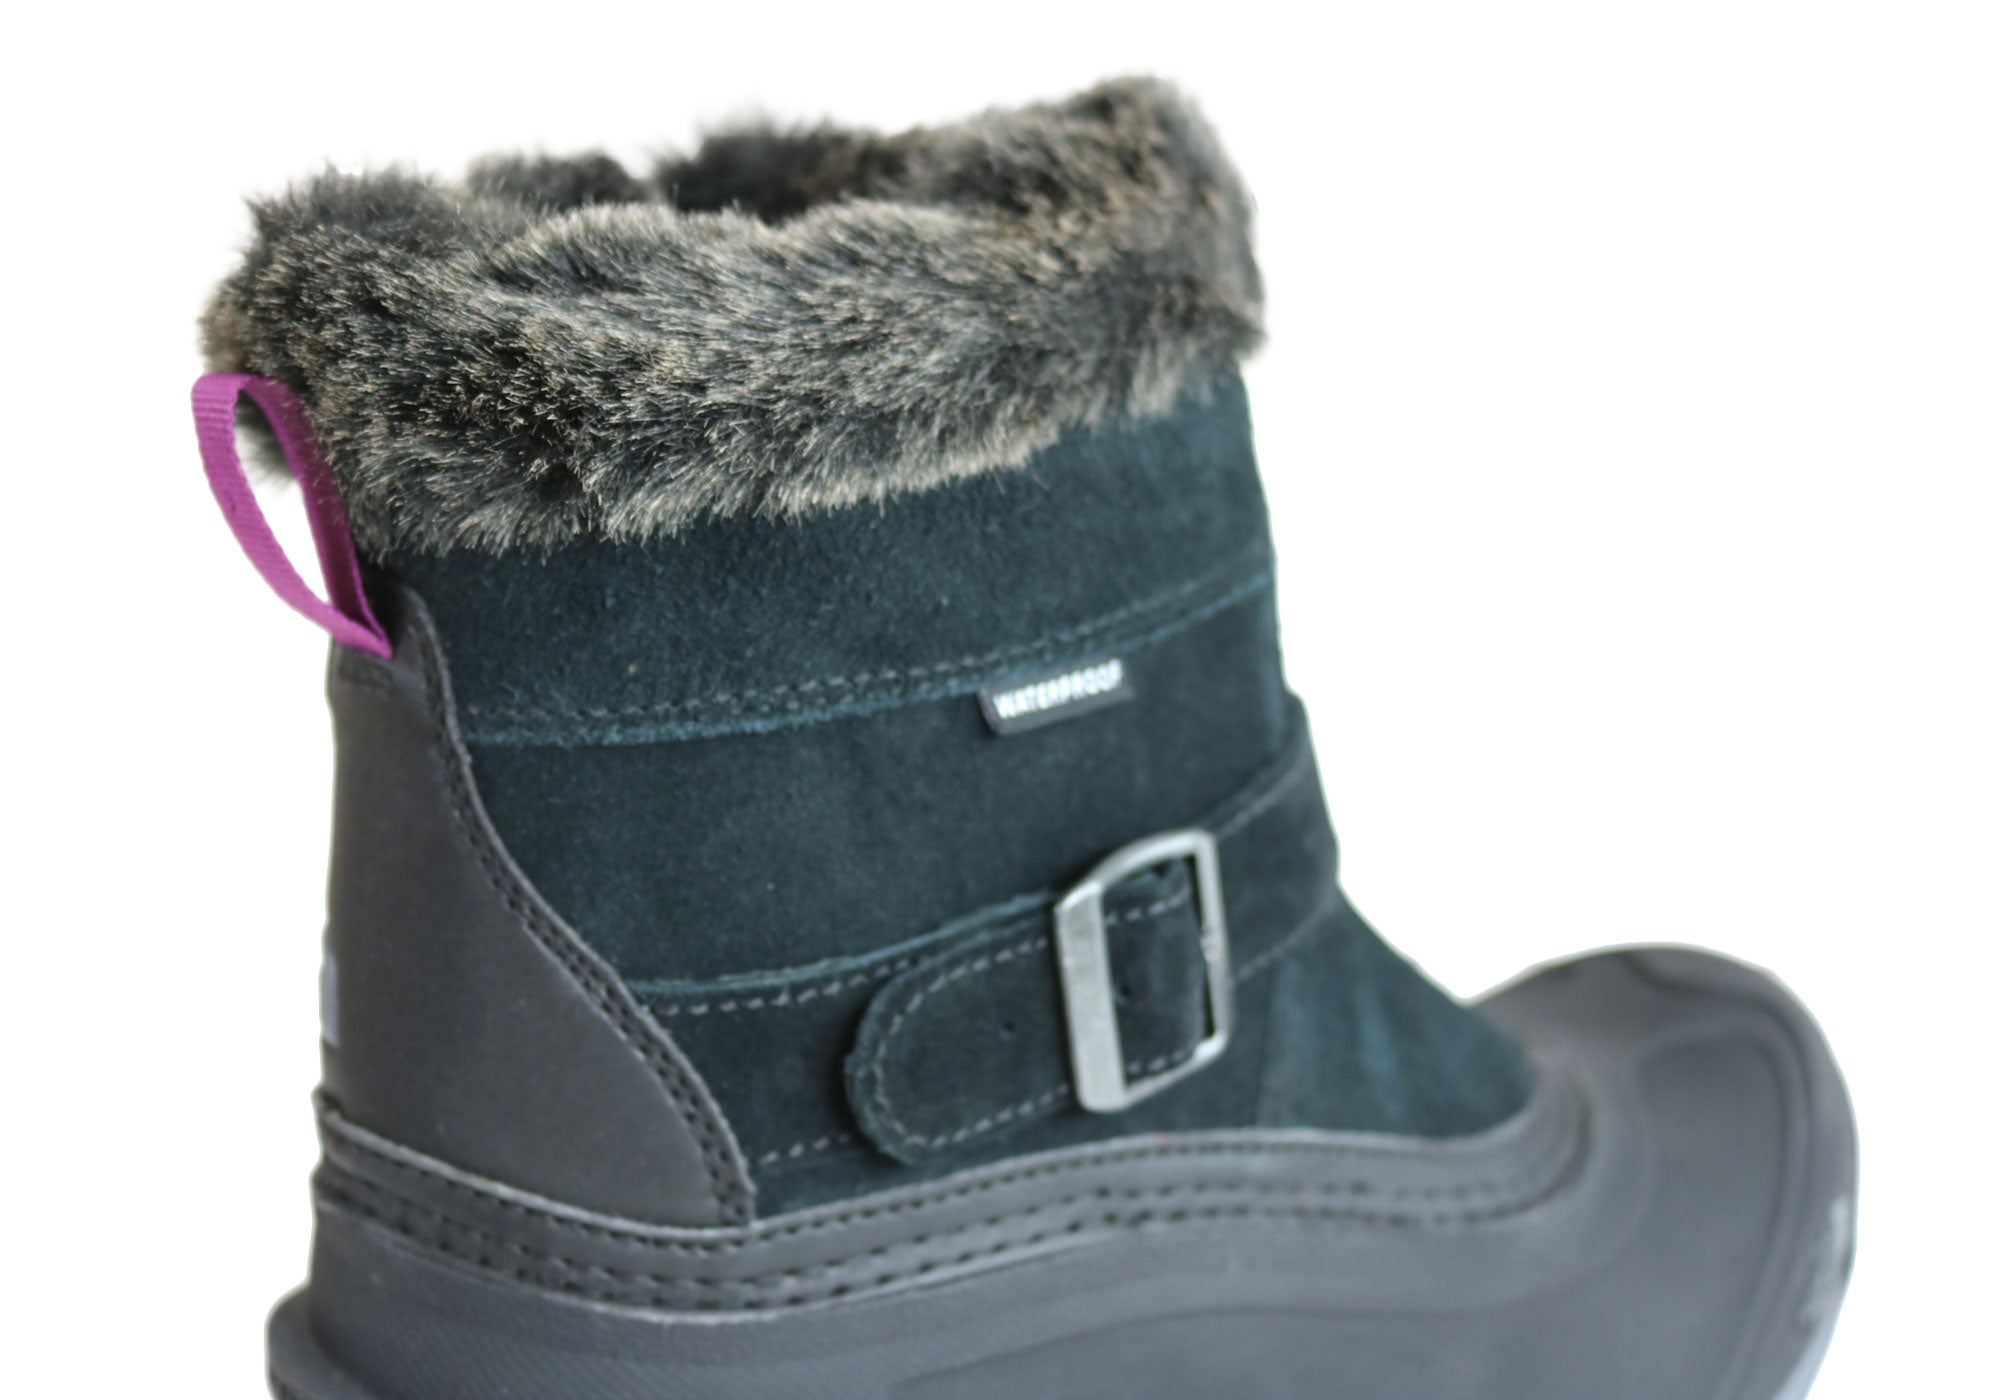 7a81a3ac4 The North Face Womens Chilkat III Pull On Waterproof Flat Ankle Boots